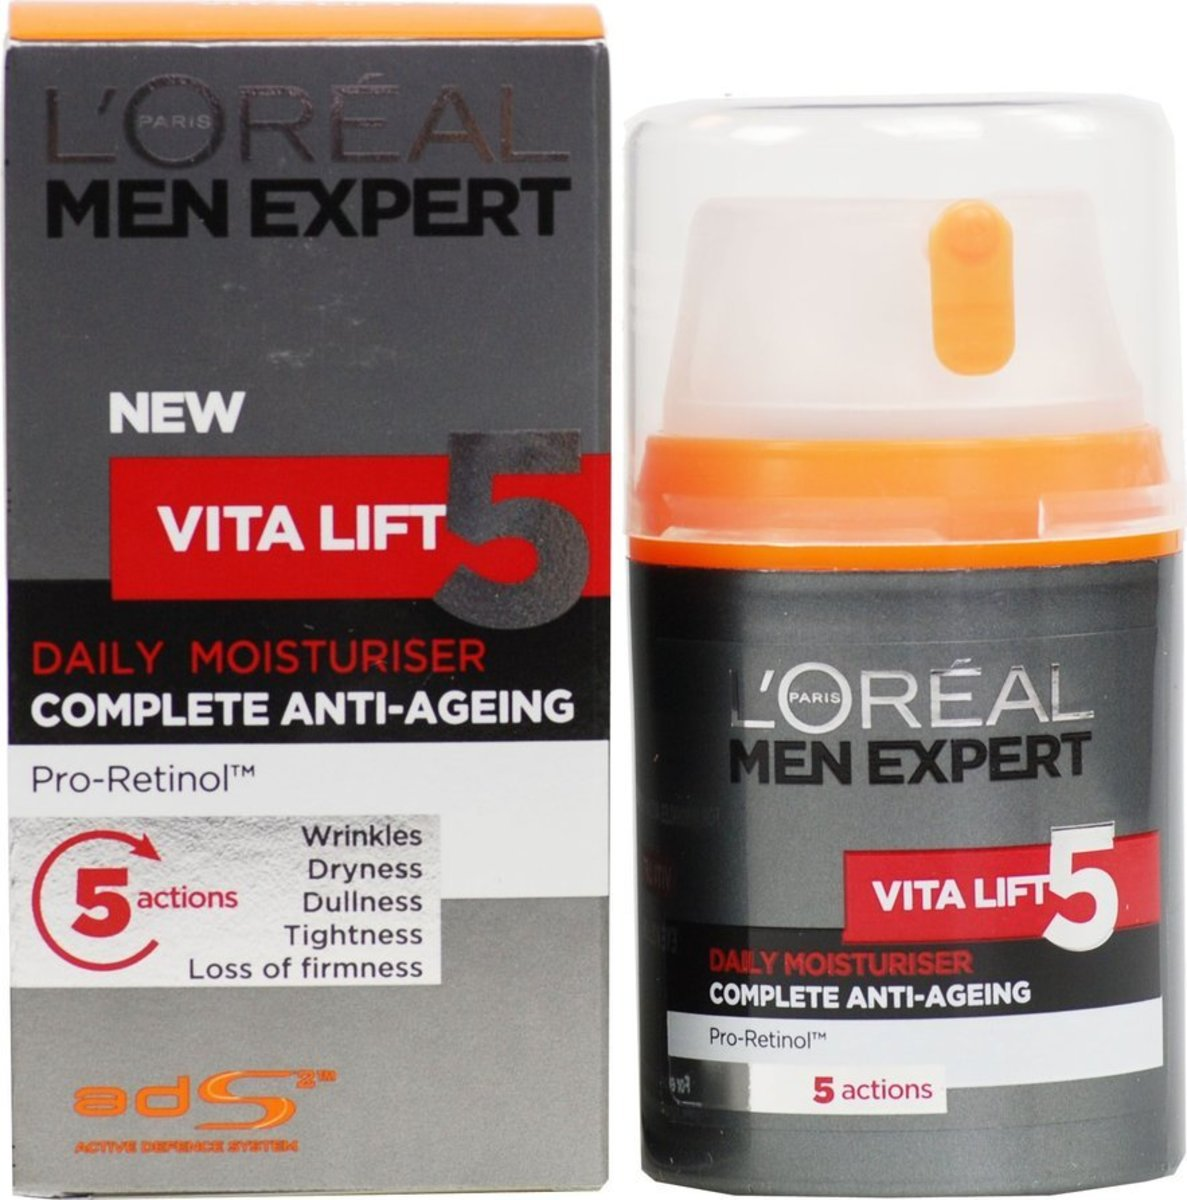 Men Expert Vita Lift 5 Complete Daily Moisturiser 50ml old/new package randomly [Parrallel Import]